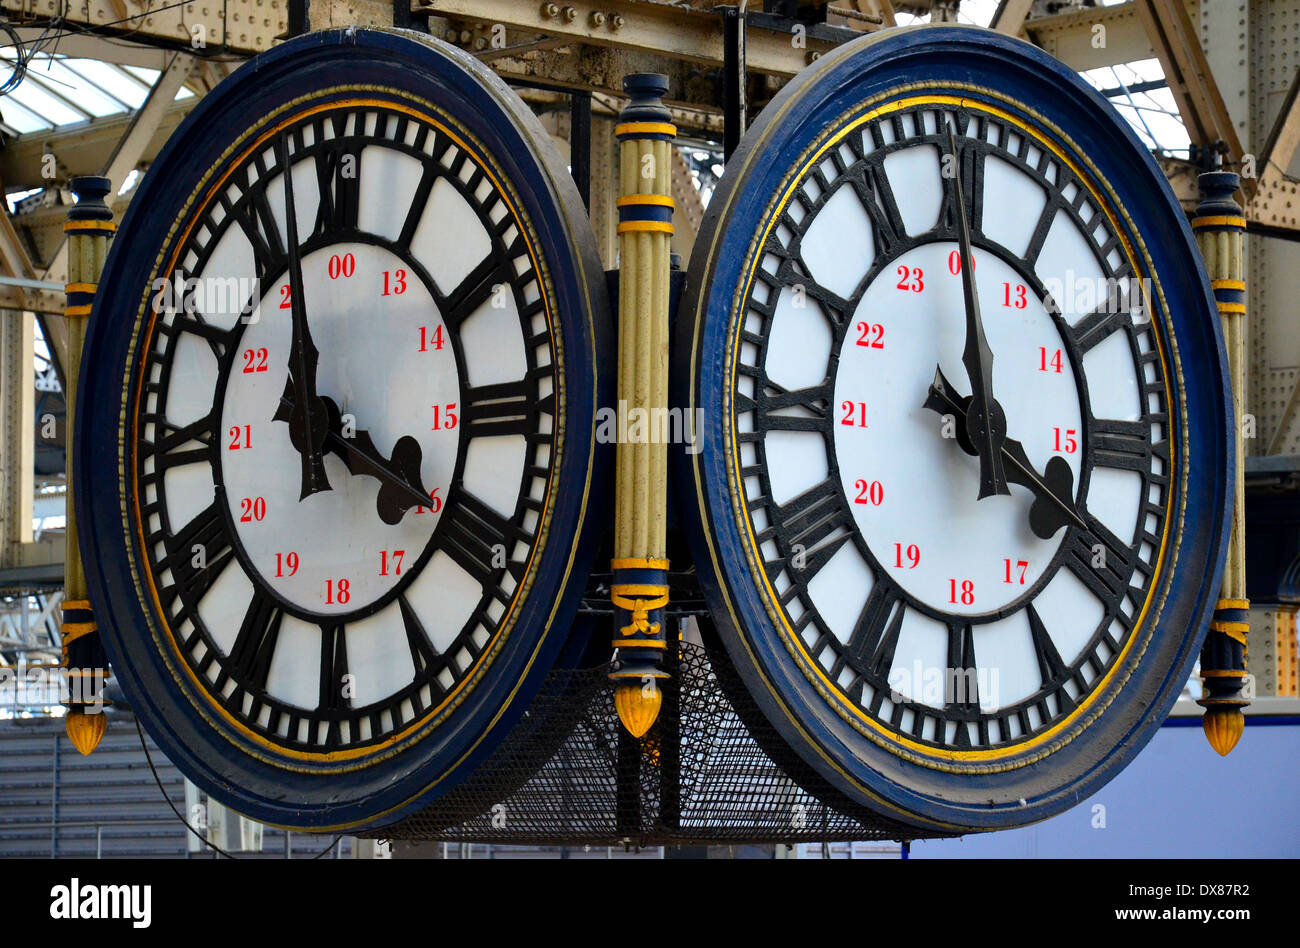 The Clock Waterloo Station. - Stock Image